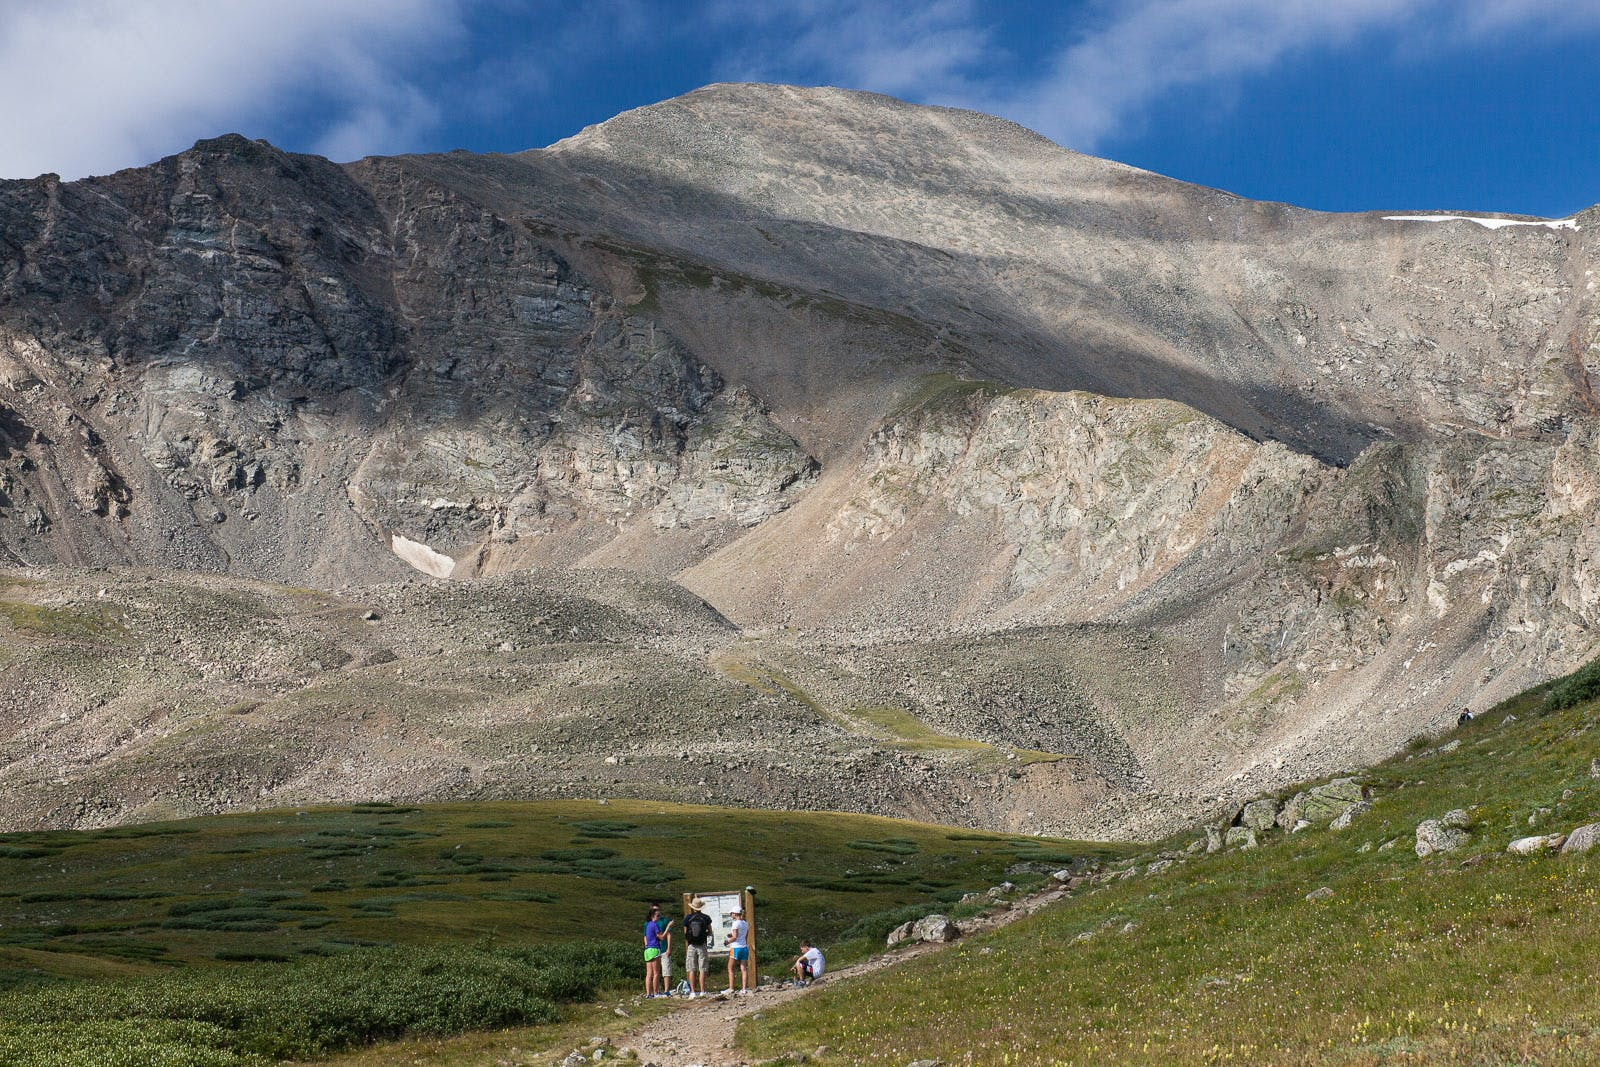 Hikers heading up to Grays Peak in Colorado